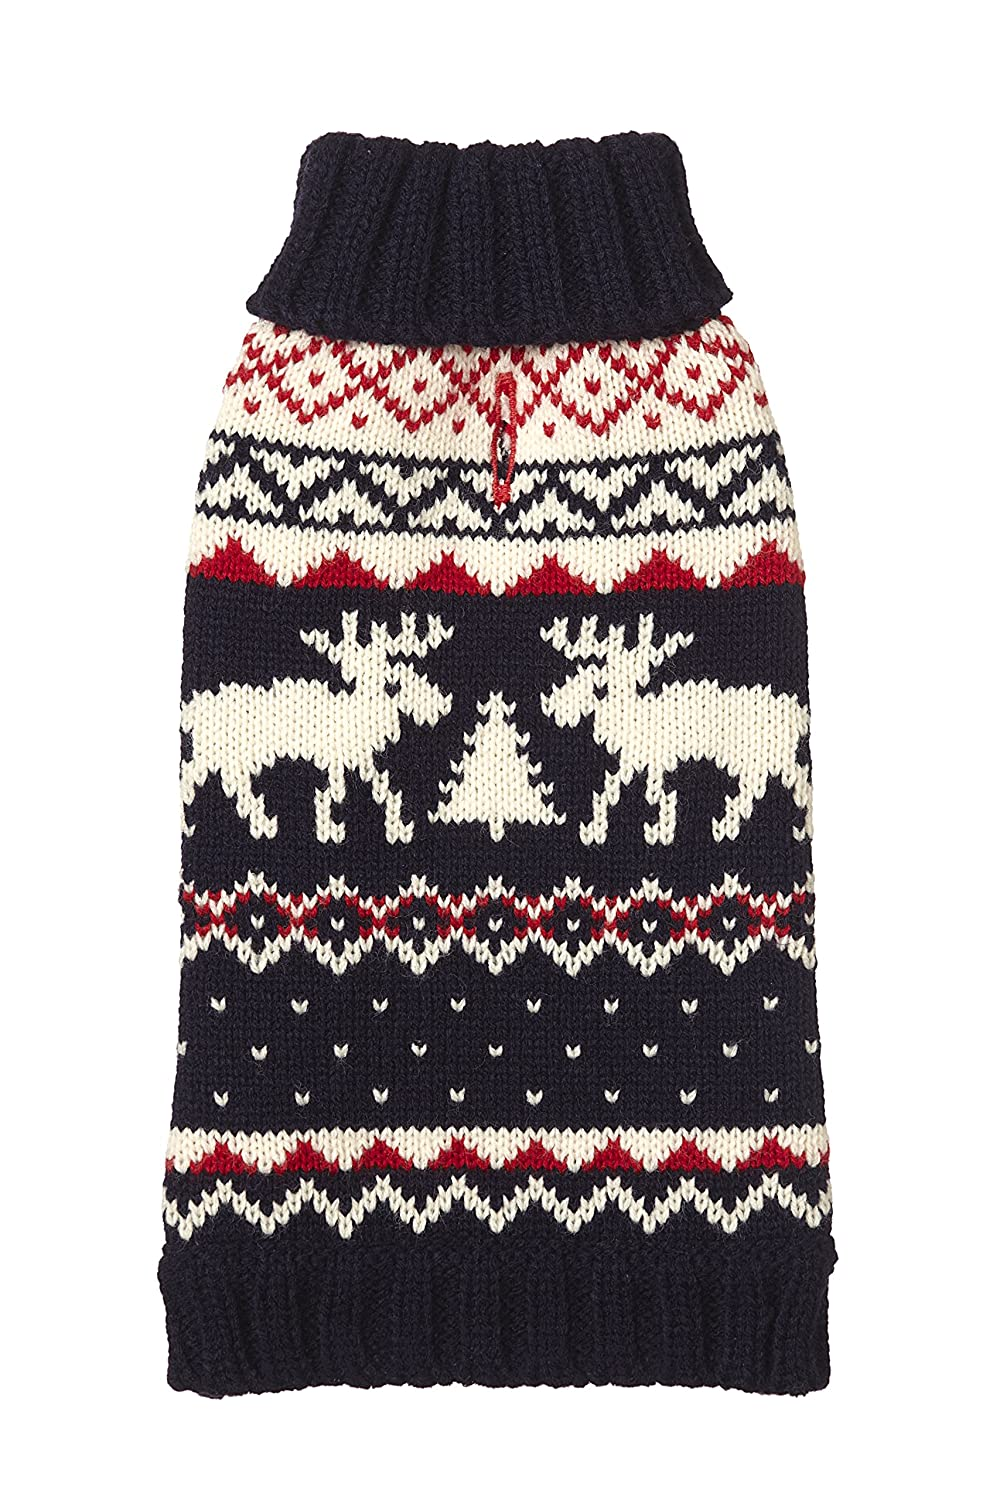 12\ Fab Dog Knit Turtleneck Dog Sweater Moose Fairisle, Navy, 12-Inch Length